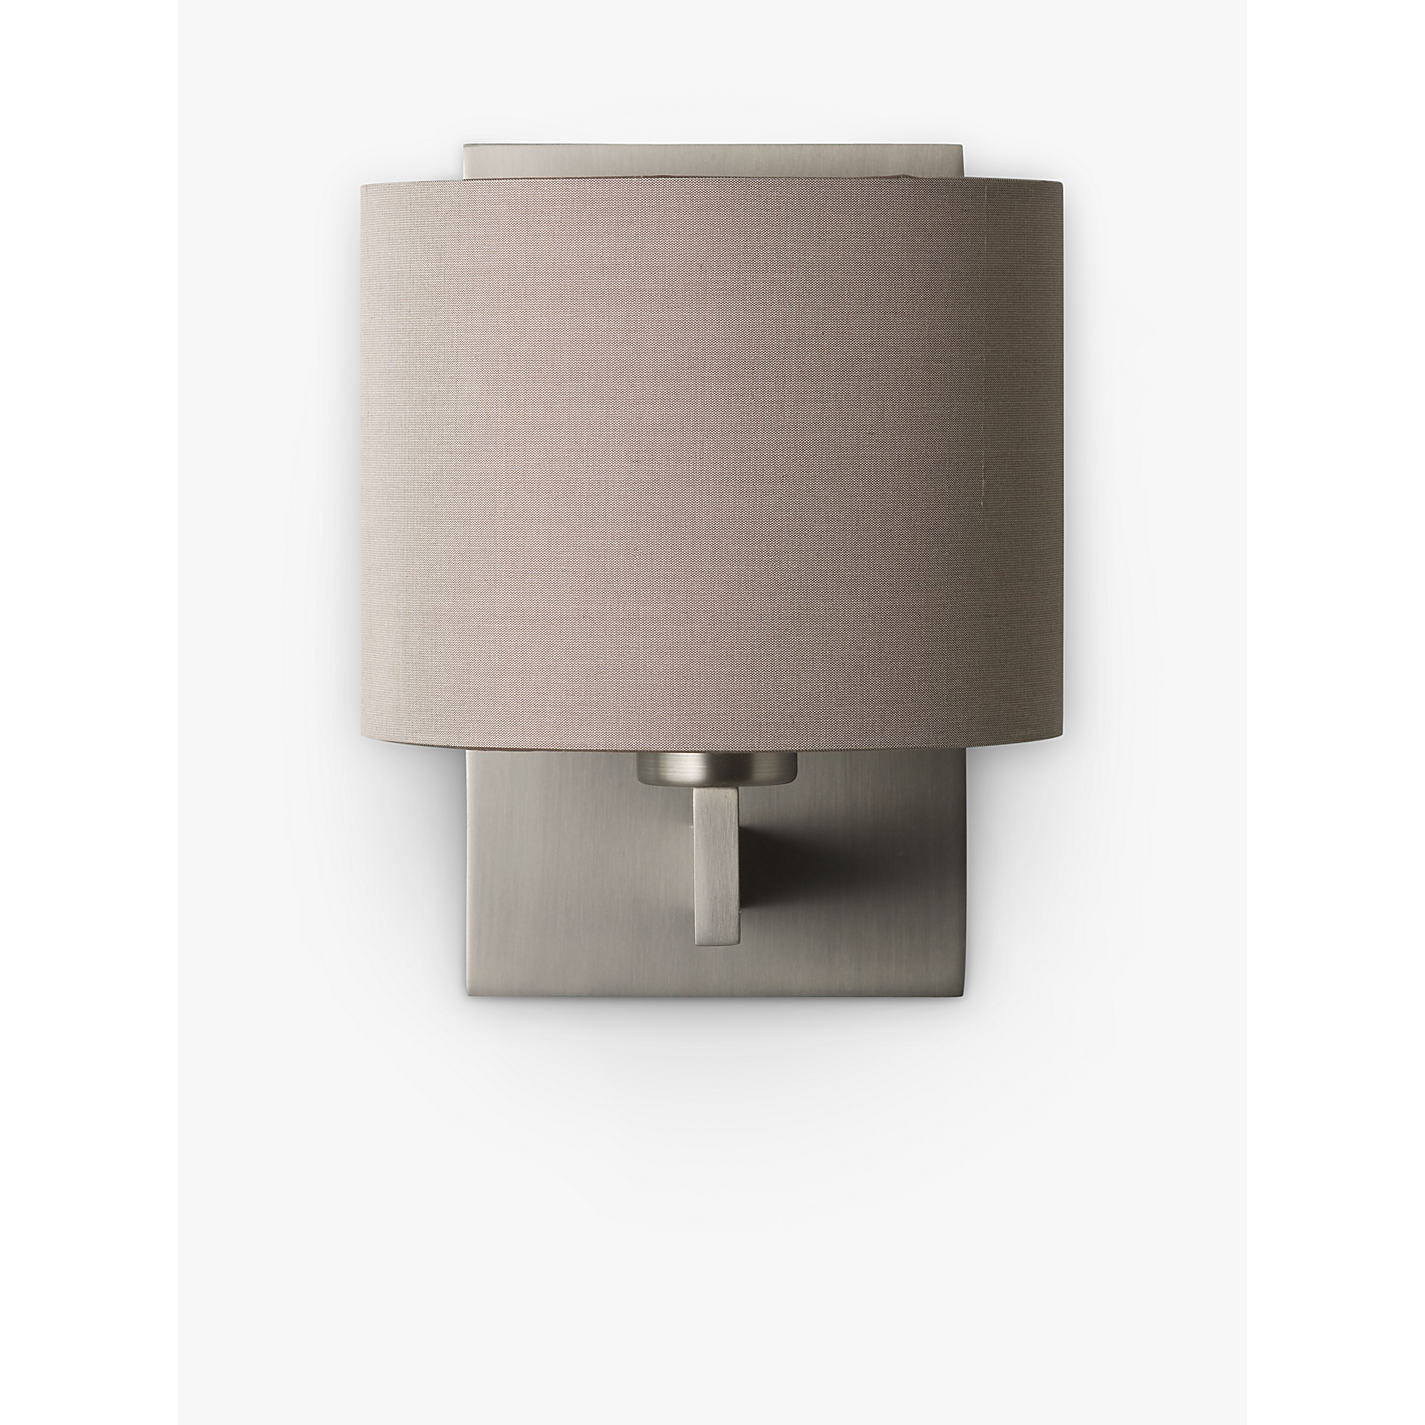 Buy ASTRO Olan Wall Light with Silk Shade, Nickel/Oyster Online at  johnlewis.